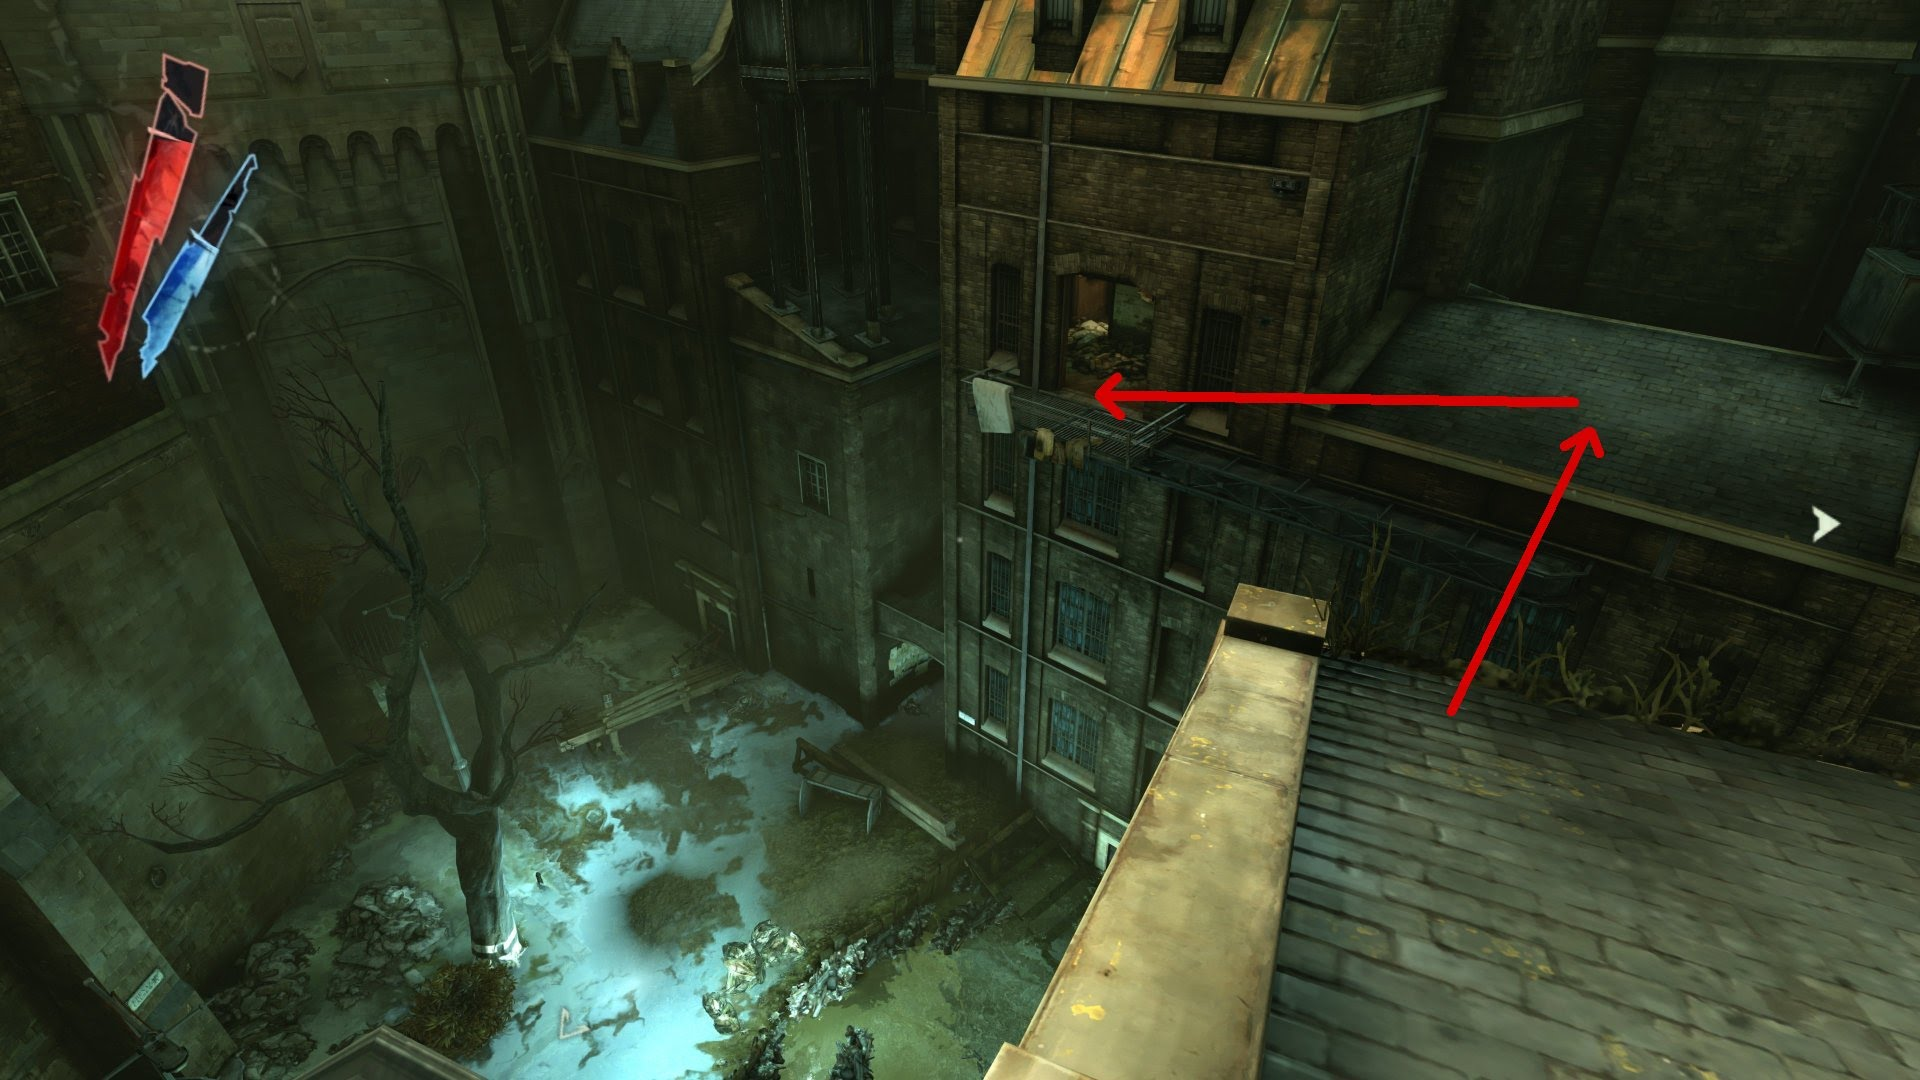 dishonored adventure walkthroughs